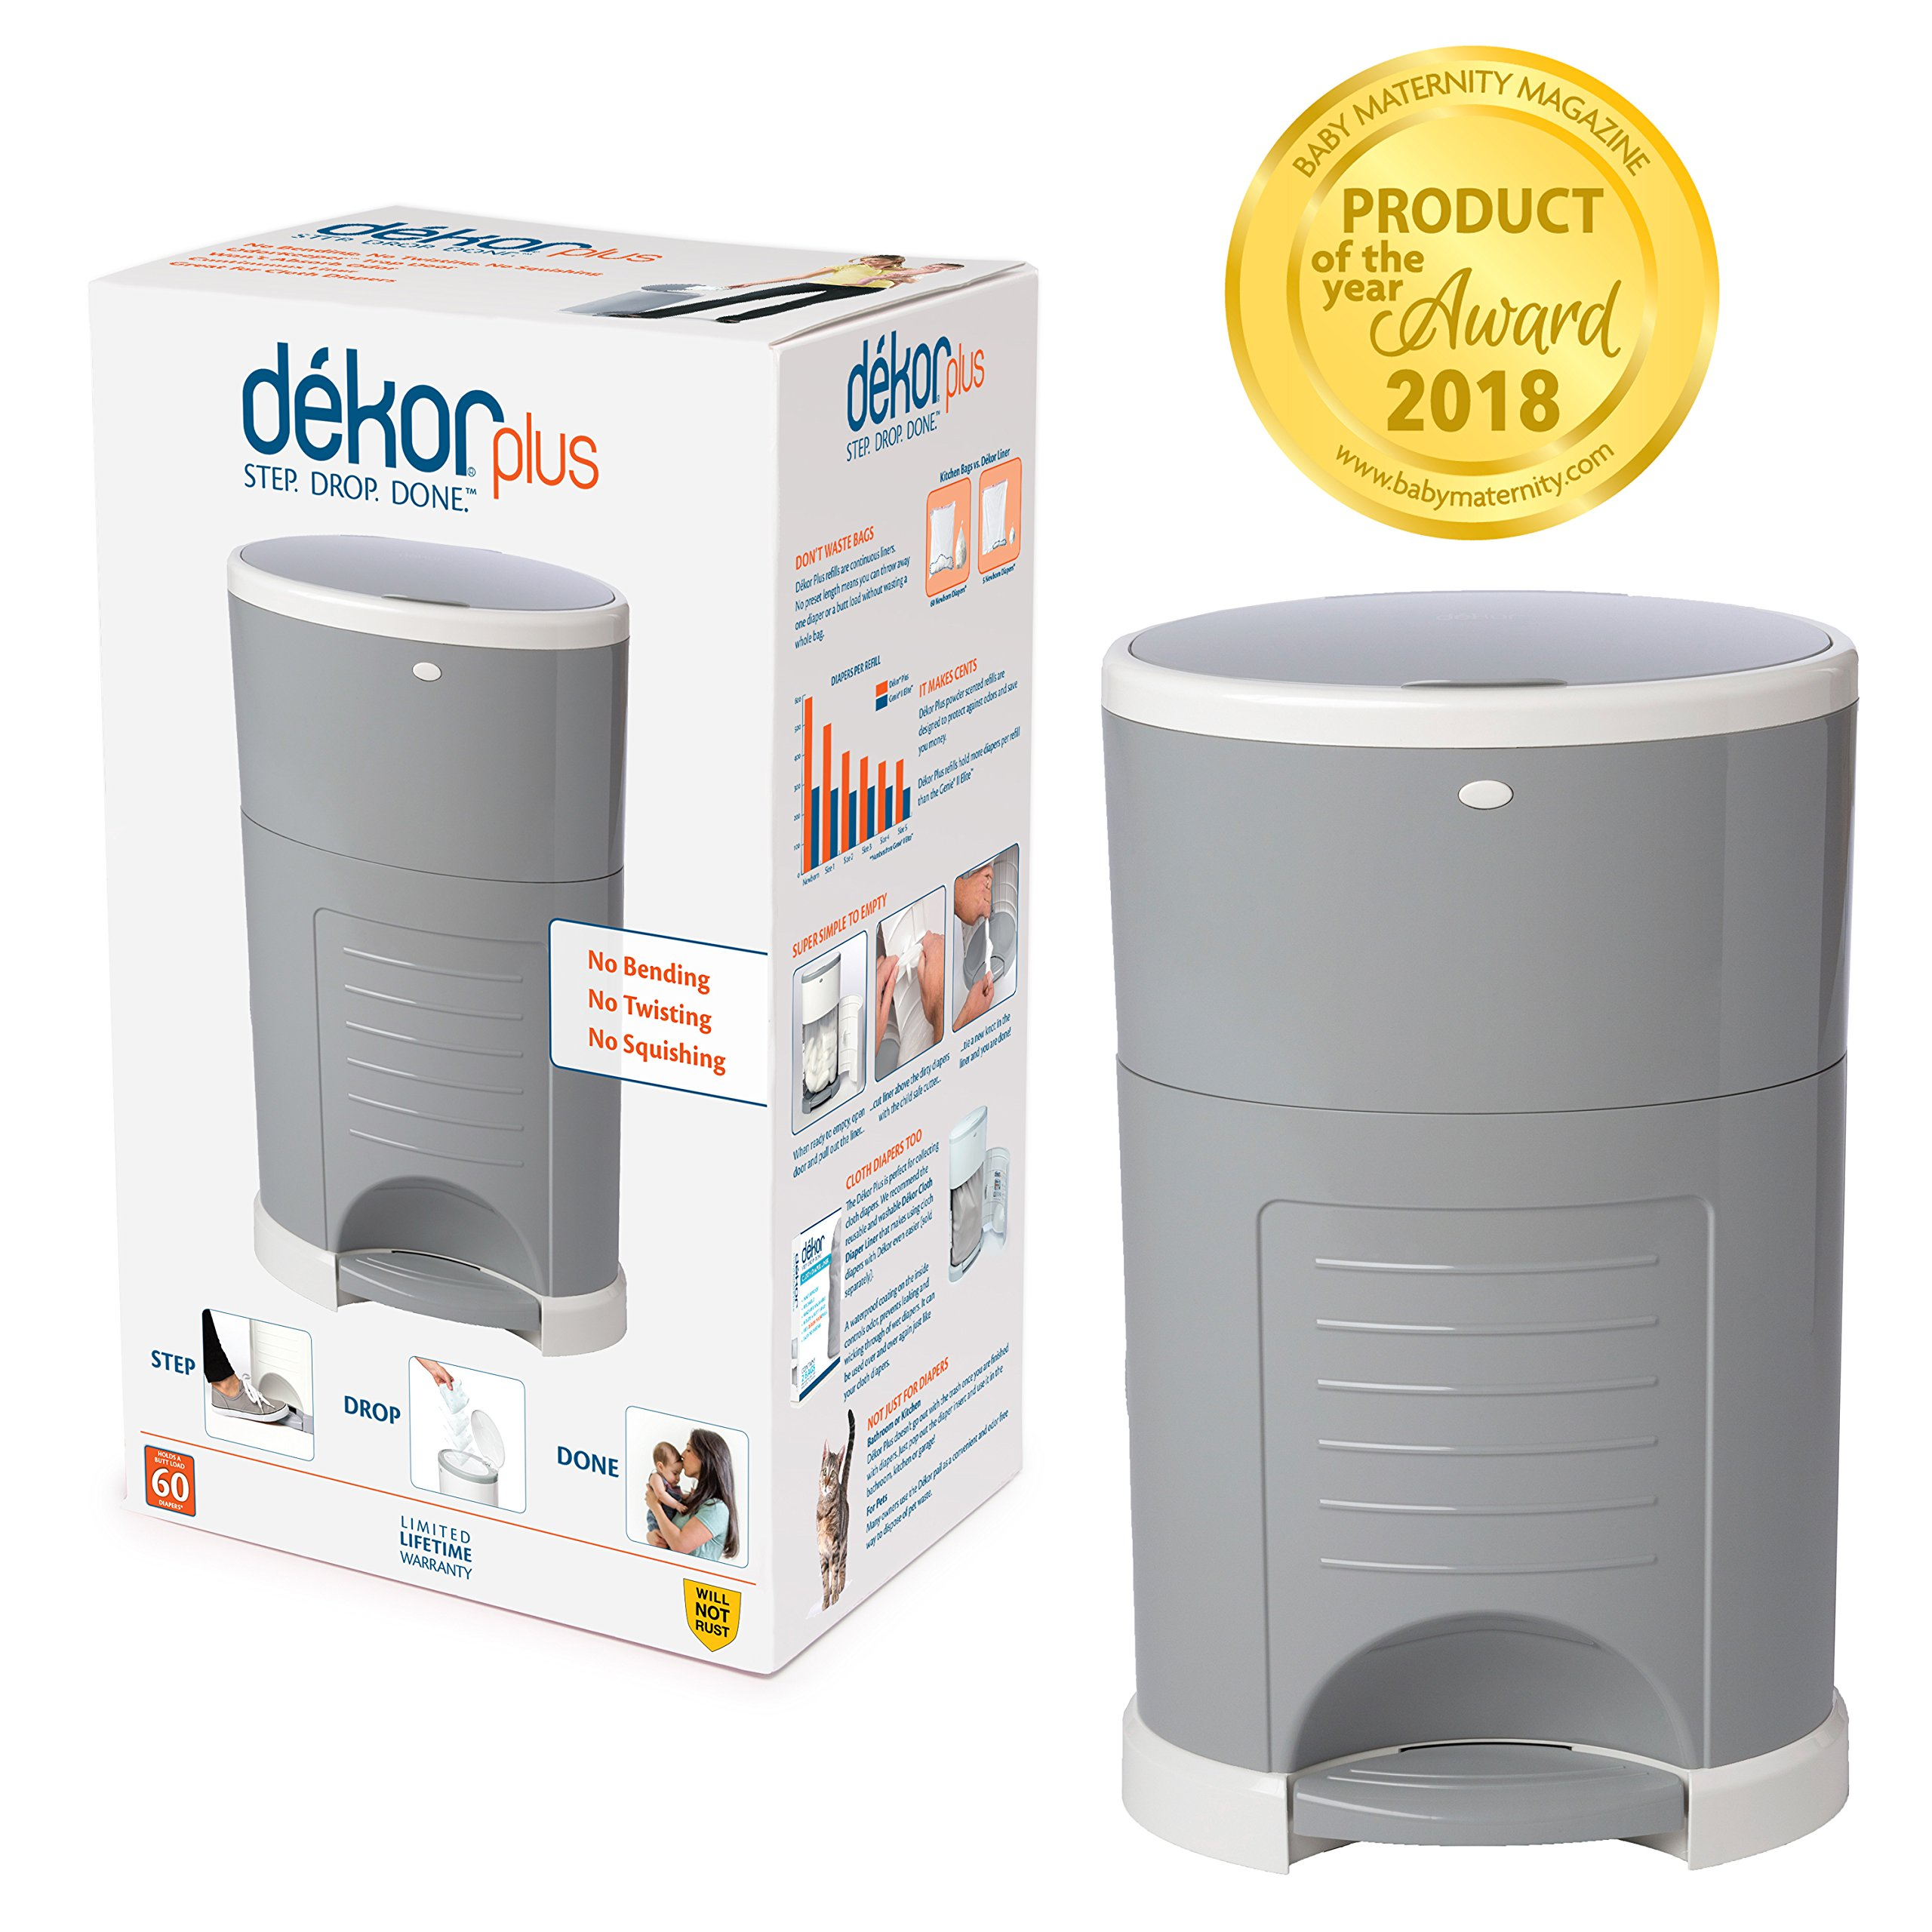 Dekor Plus Hands-Free Diaper Pail | Gray | Easiest to Use | Just Step - Drop - Done | Doesn't Absorb Odors | 20 Second Bag Change | Most Economical Refill System |Great for Cloth Diapers by DEKOR